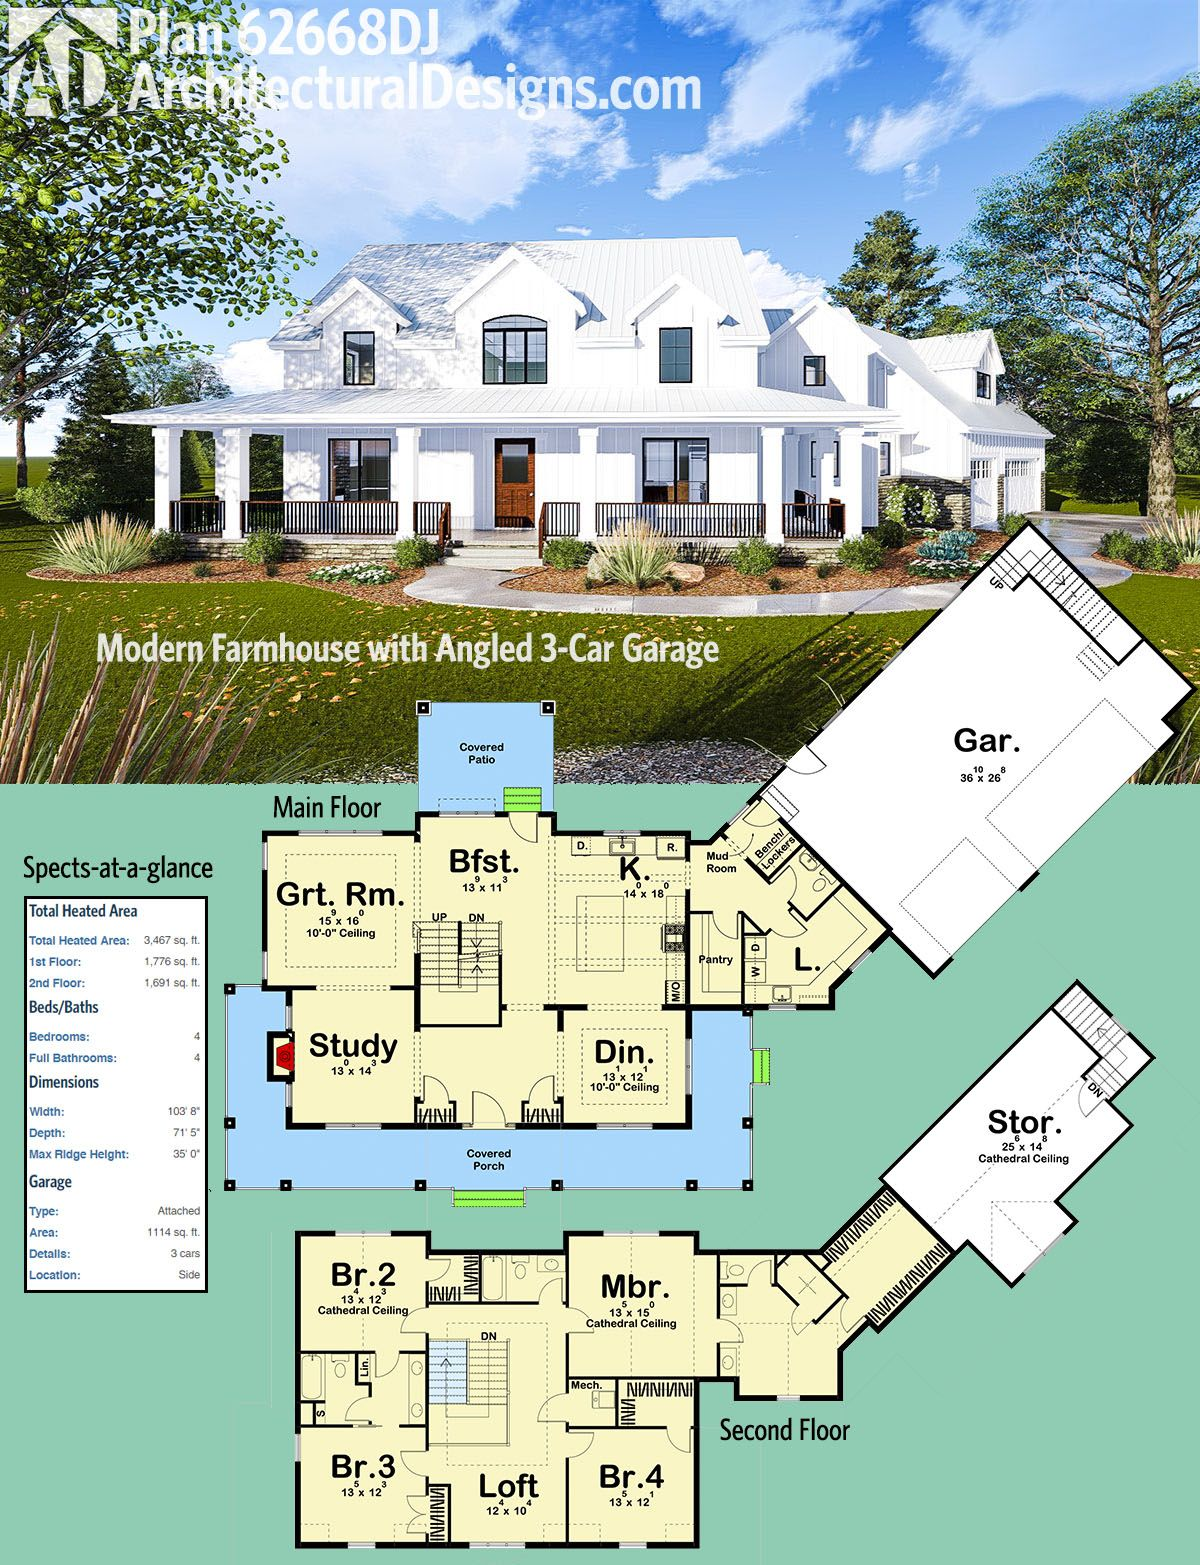 Modern Farmhouse Plans plan 62668dj: modern farmhouse with angled 3-car garage